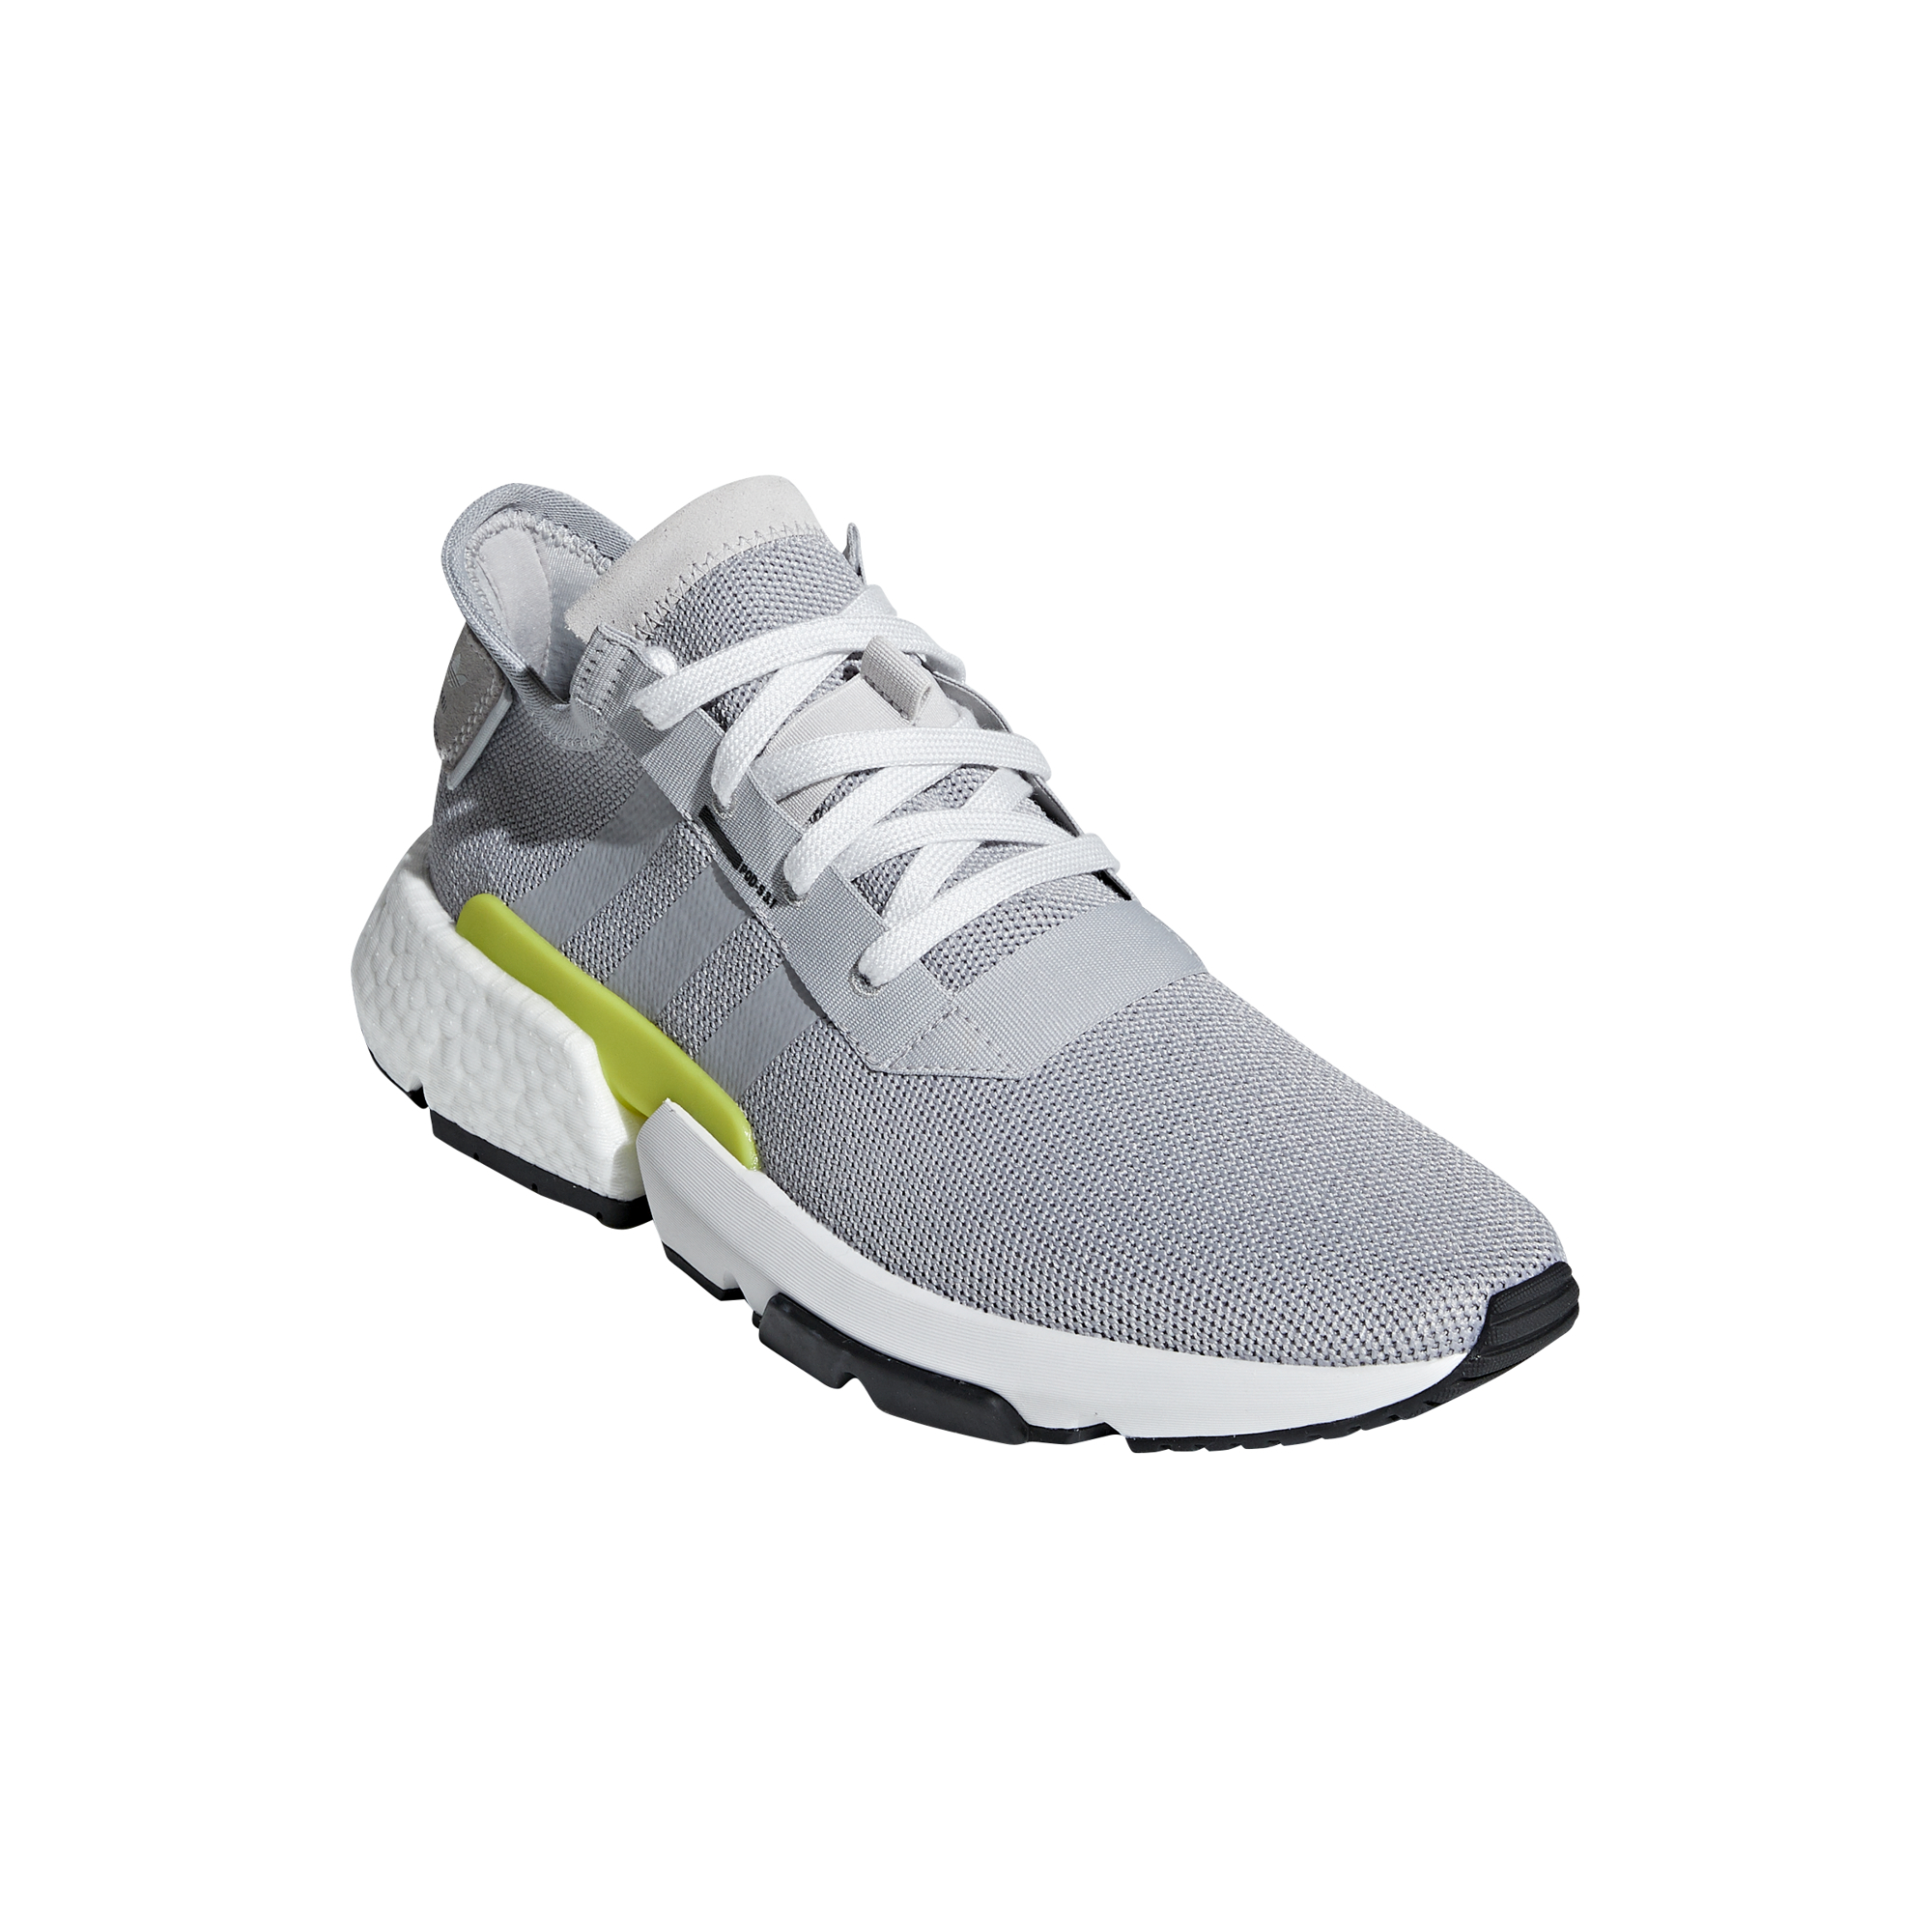 sale retailer 015be 4f540 The high-rebound EVA (ethyl vinyl acetate) element offers a soft and  responsive cushioning to the forefoot, while the Boost heel is designed to  offer ...